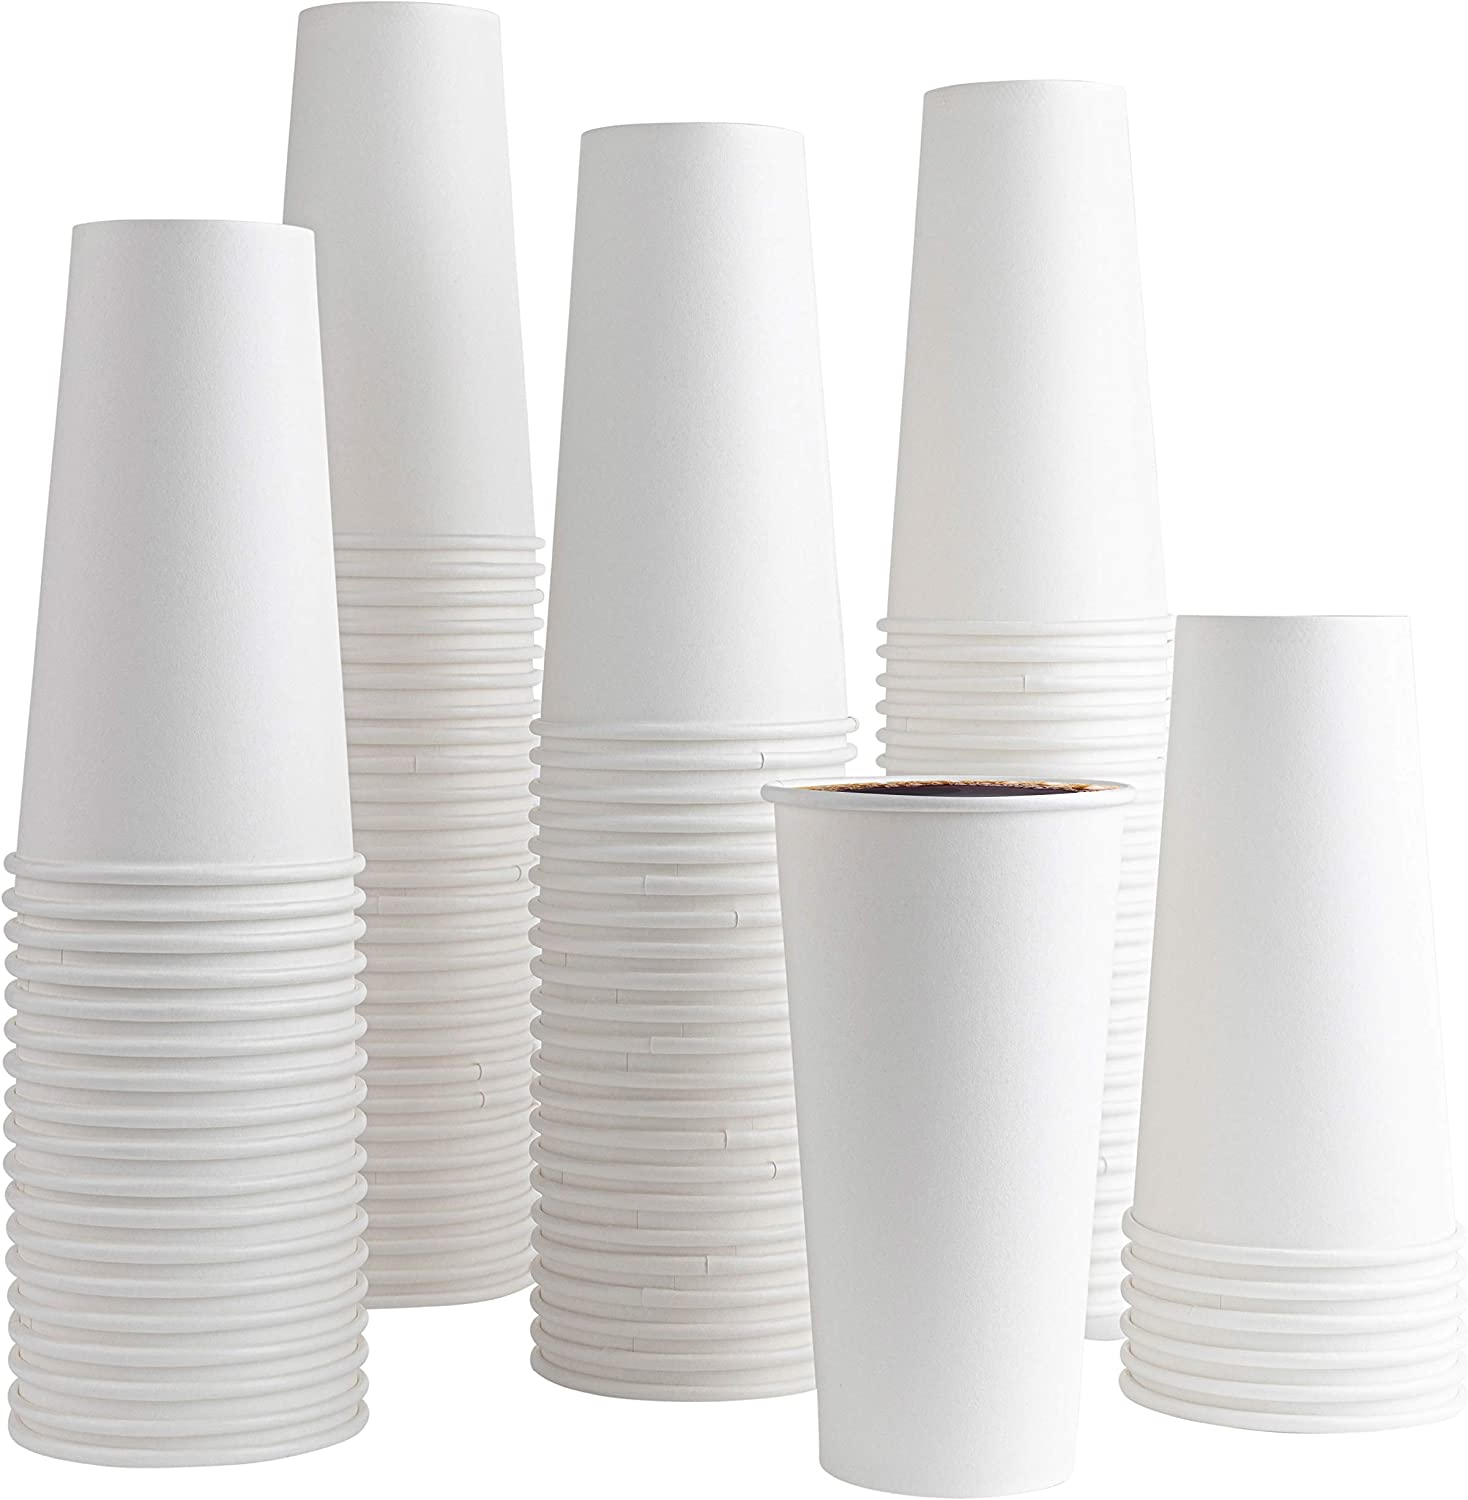 200 PACK COFFEE CUPS 20 latest ounce Cups Hot Max 47% OFF Disposable Coff Paper -